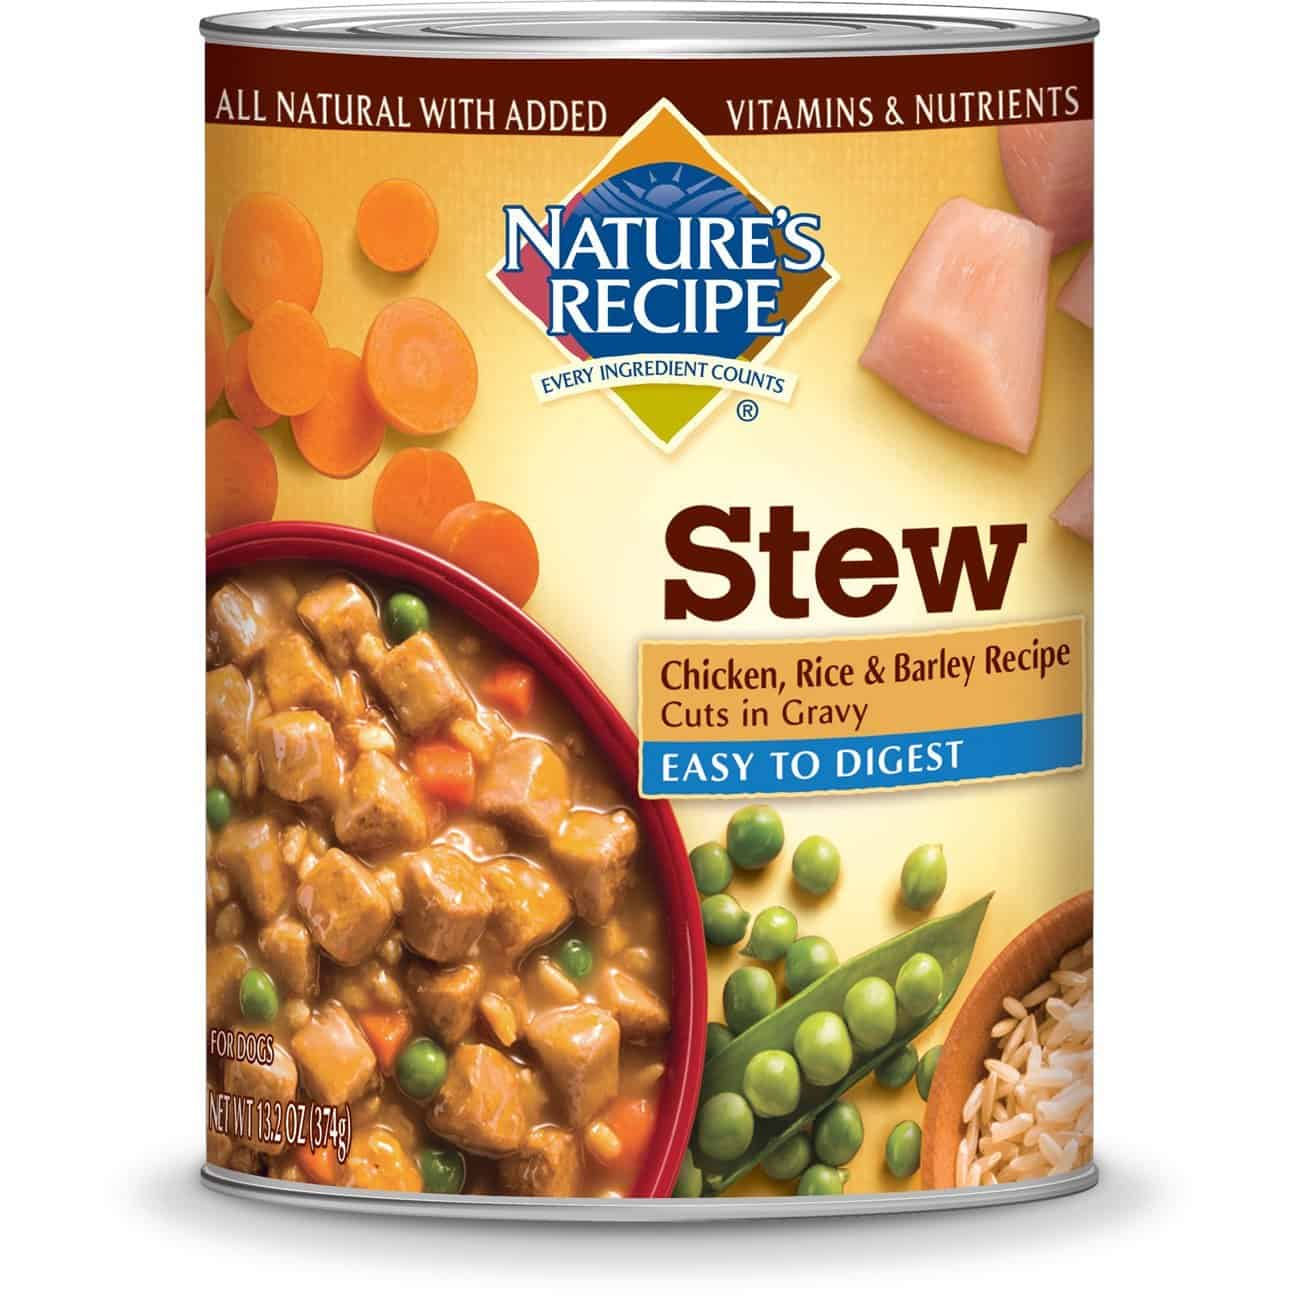 Natures recipe dog food review quality ingredients you can trust natures recipe wet dog food cuts in gravy forumfinder Choice Image